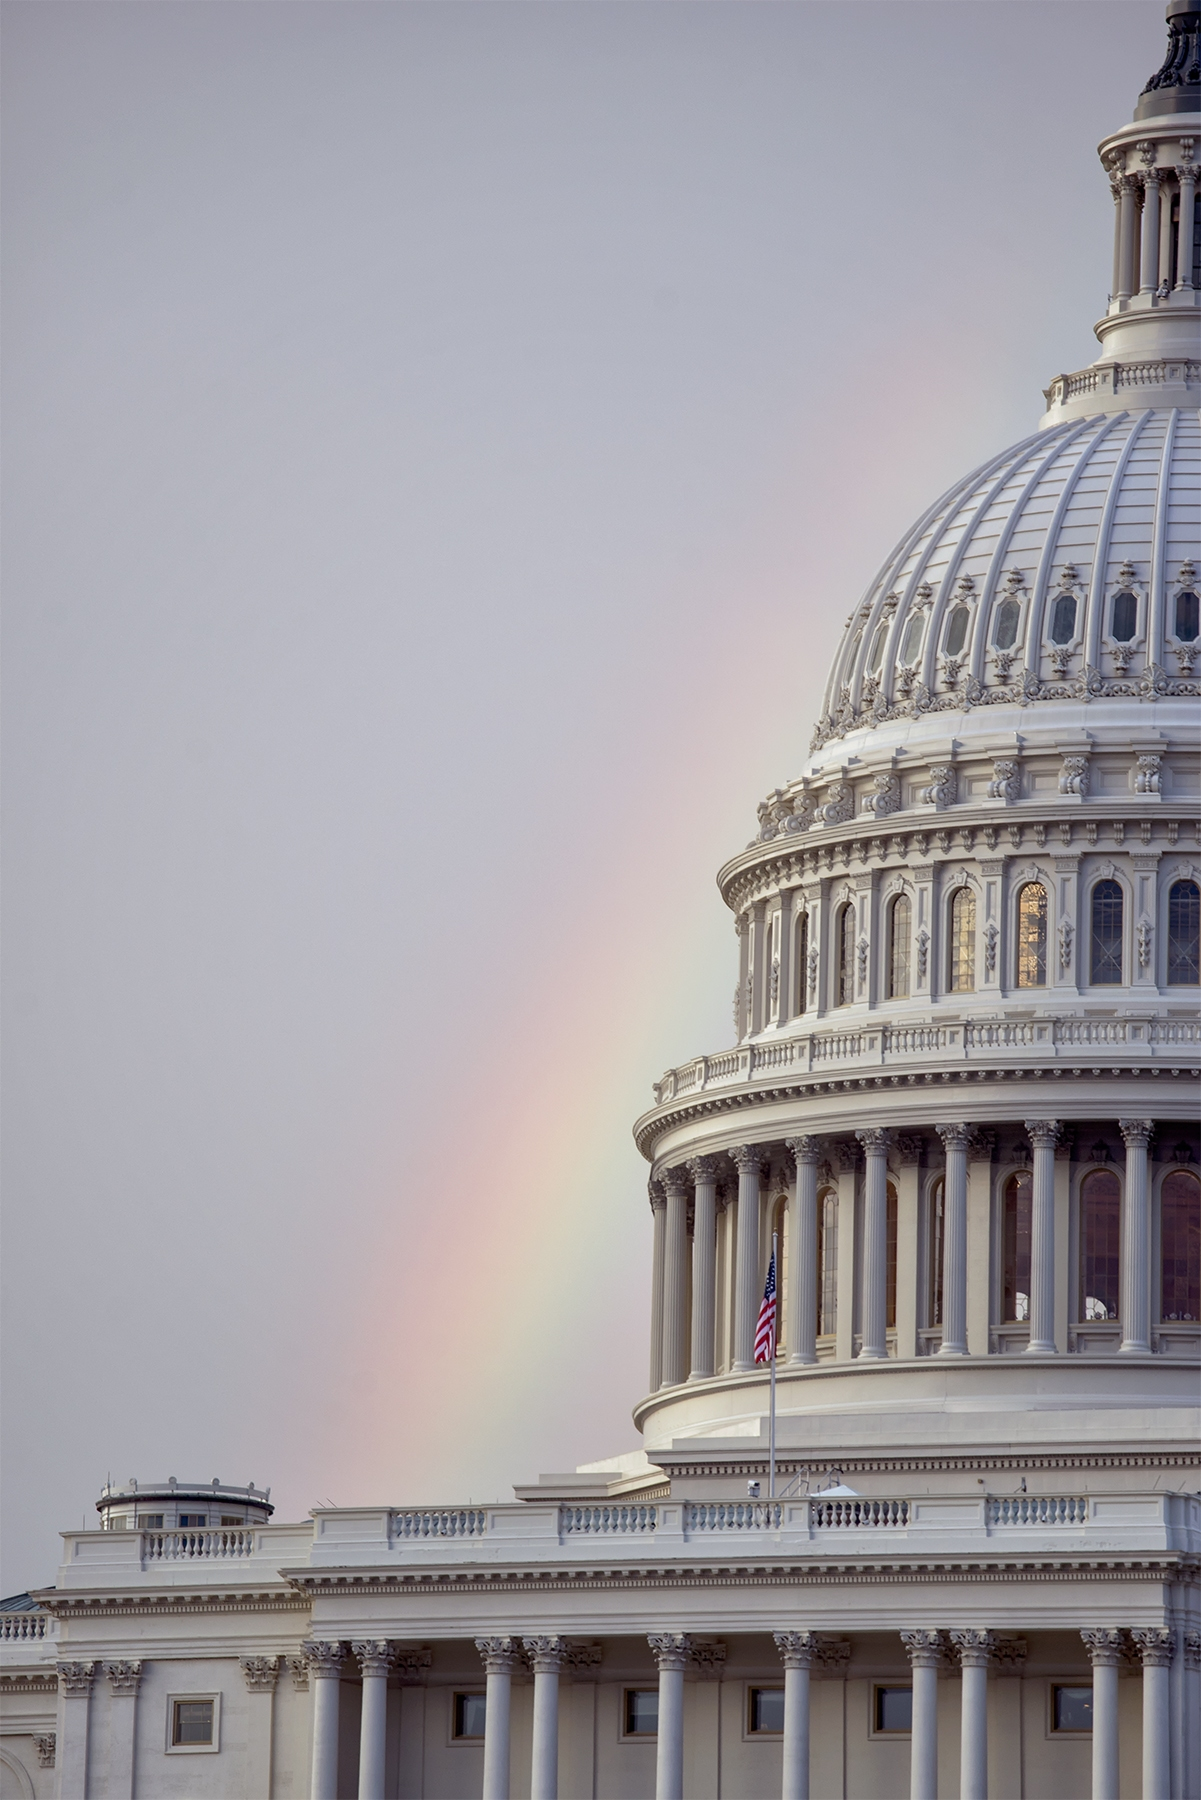 rainbow, us capitol, washington dc, capitol hill, rain, clouds, day, sunset, national mall, dome, 70-200, zoom, close up, architecture, details, washington dc